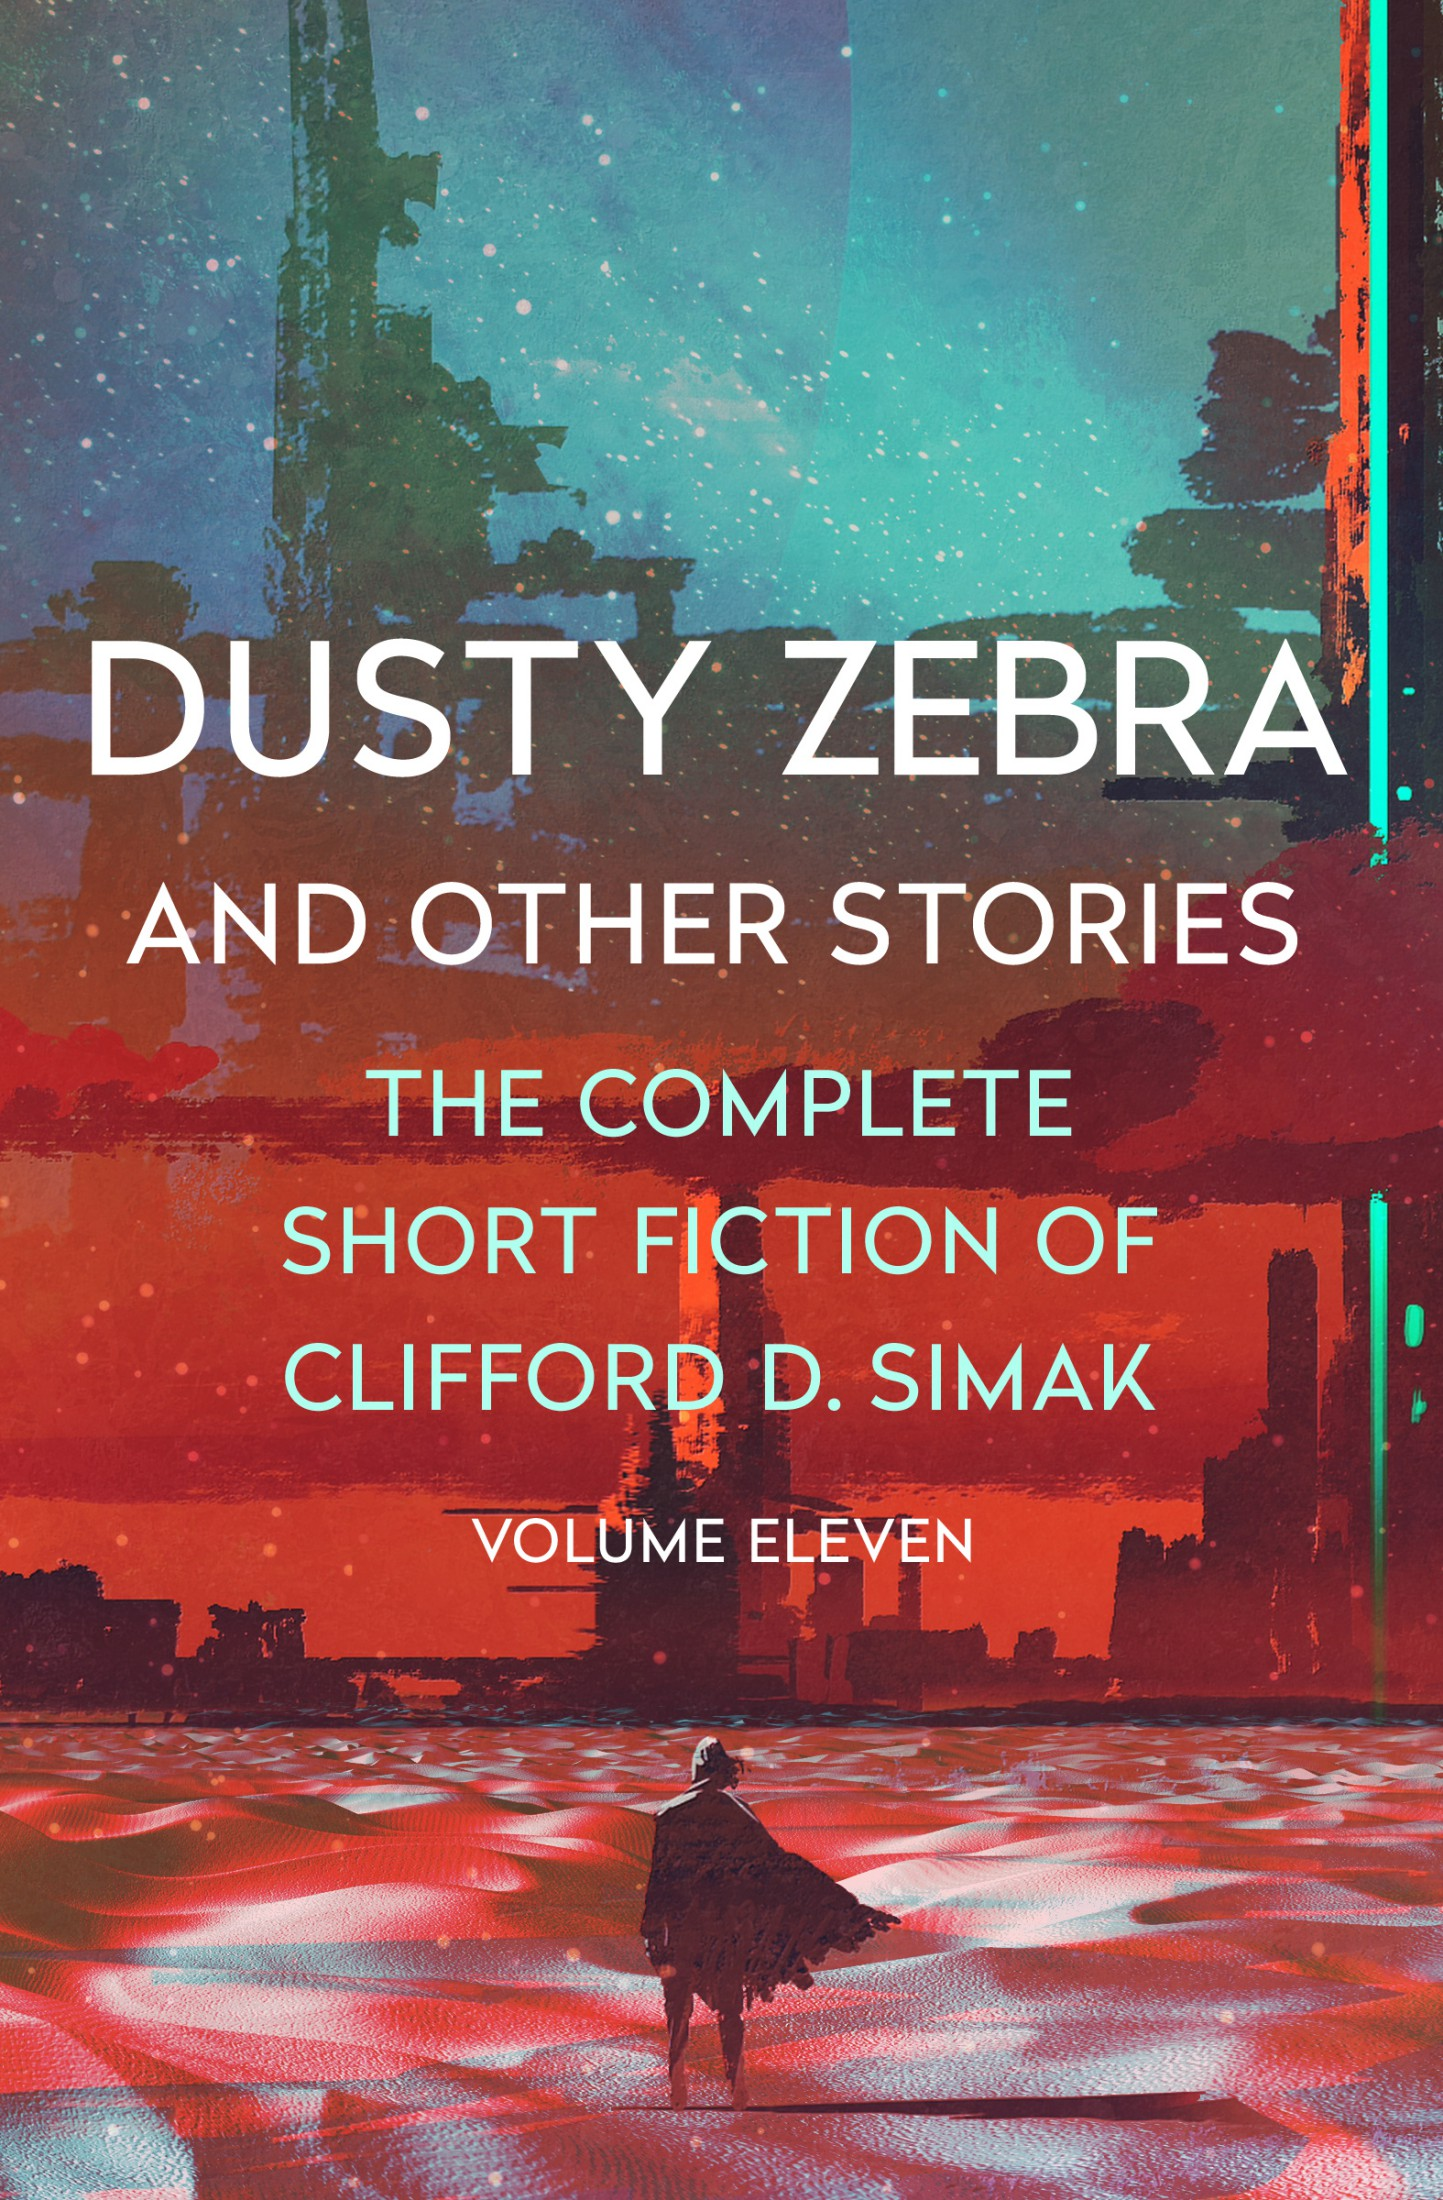 Dusty Zebra and Other Stories